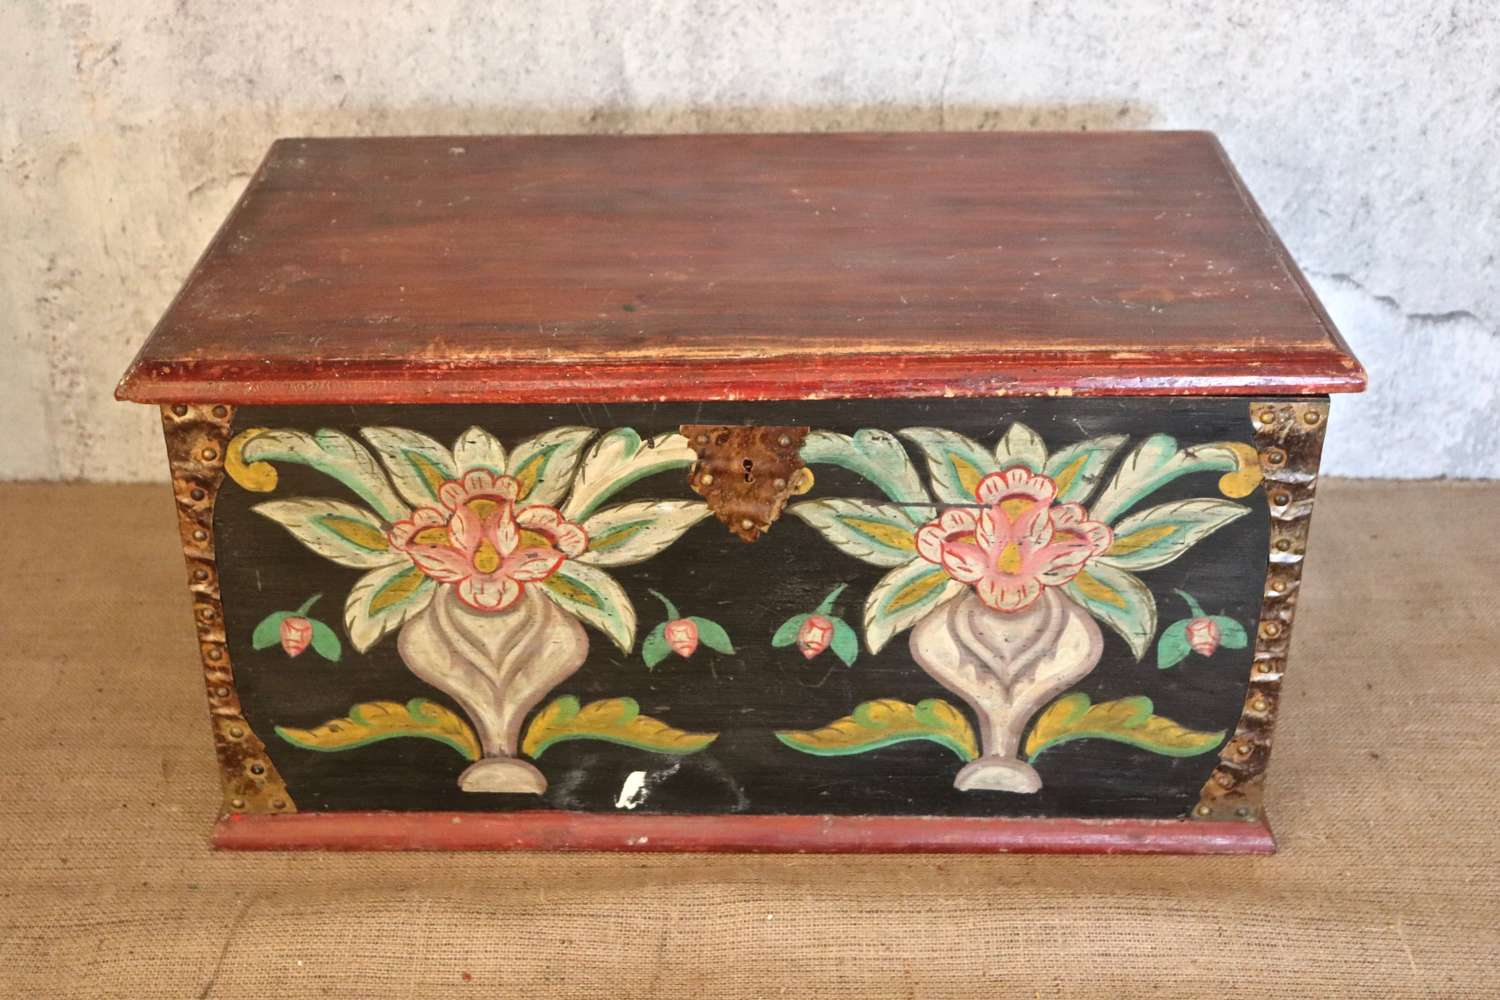 19th century Italian pine box with floral decoration